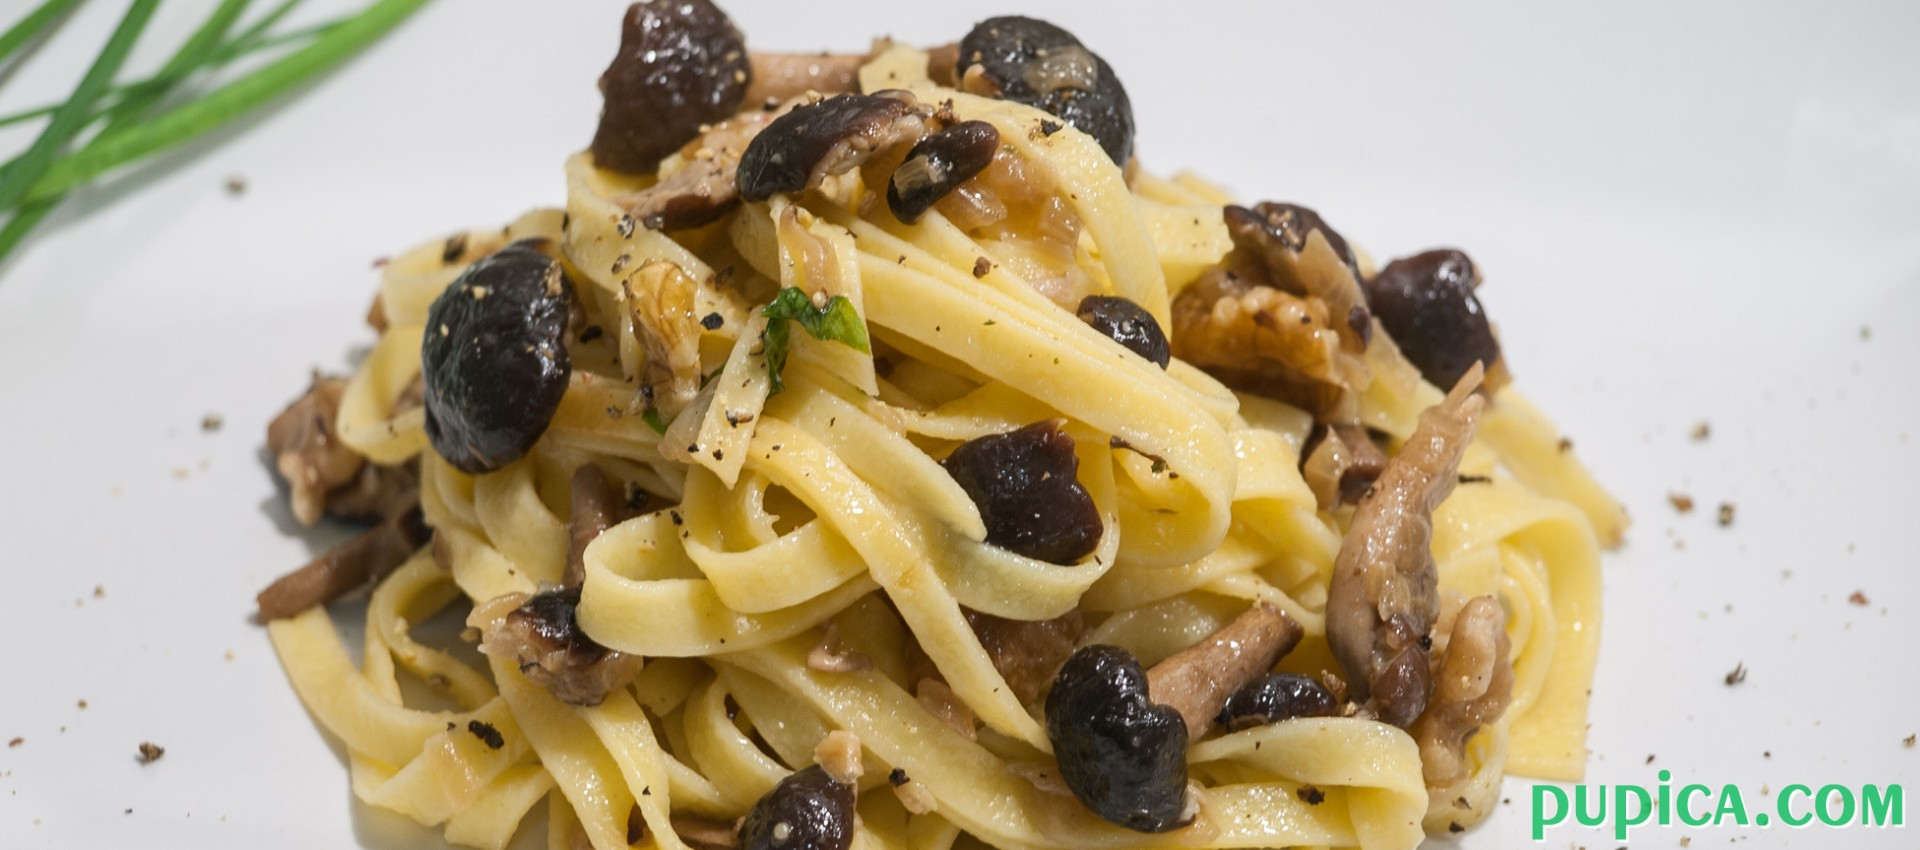 Pasta with Mushrooms and Walnuts